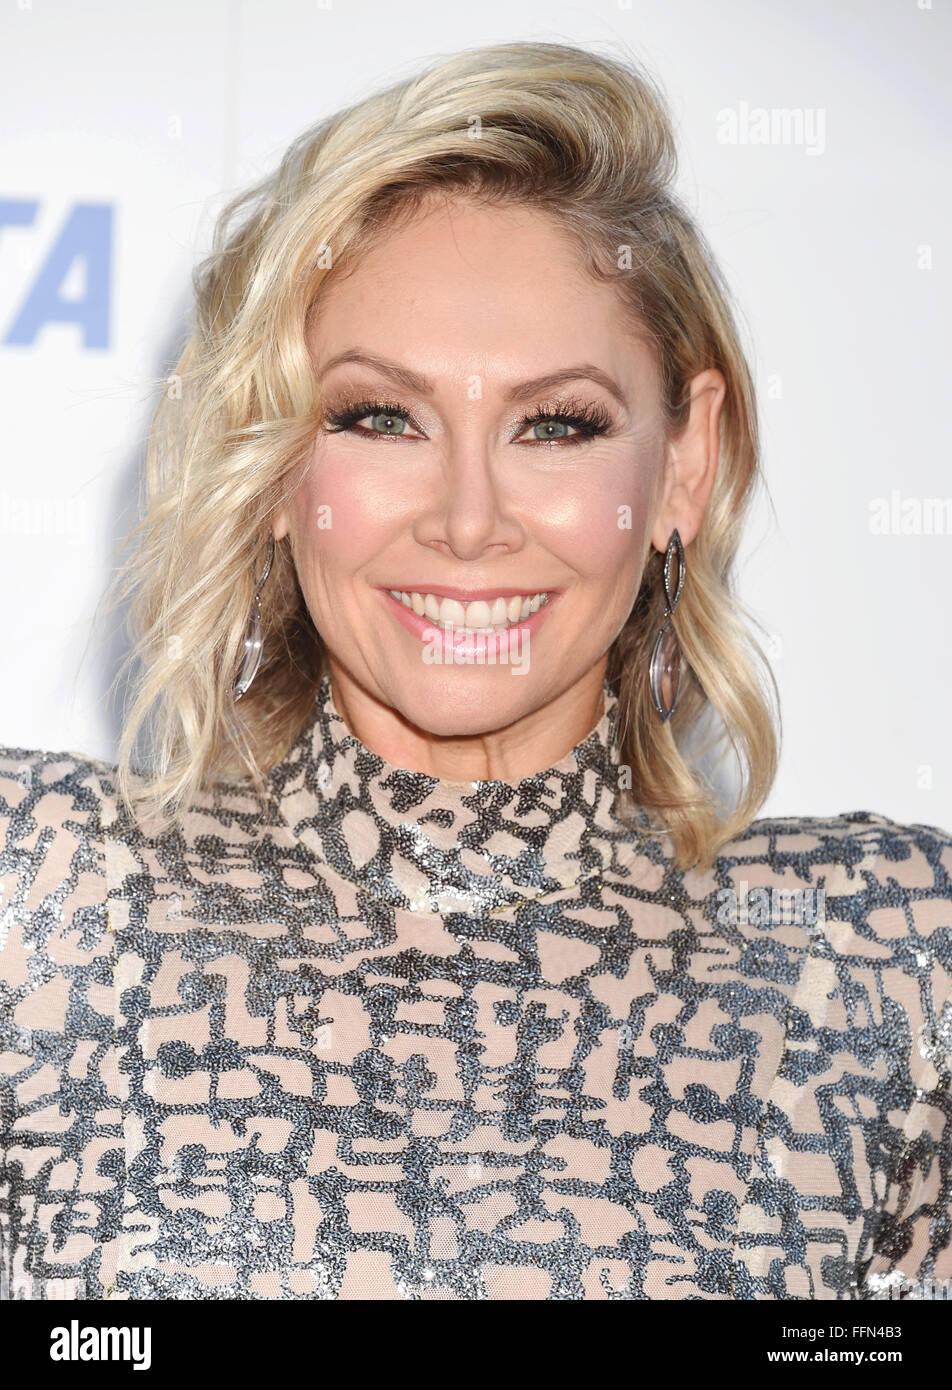 TV personality/dancer Kym Johnson arrives at PETA's 35th Anniversary Party at Hollywood Palladium on September - Stock Image